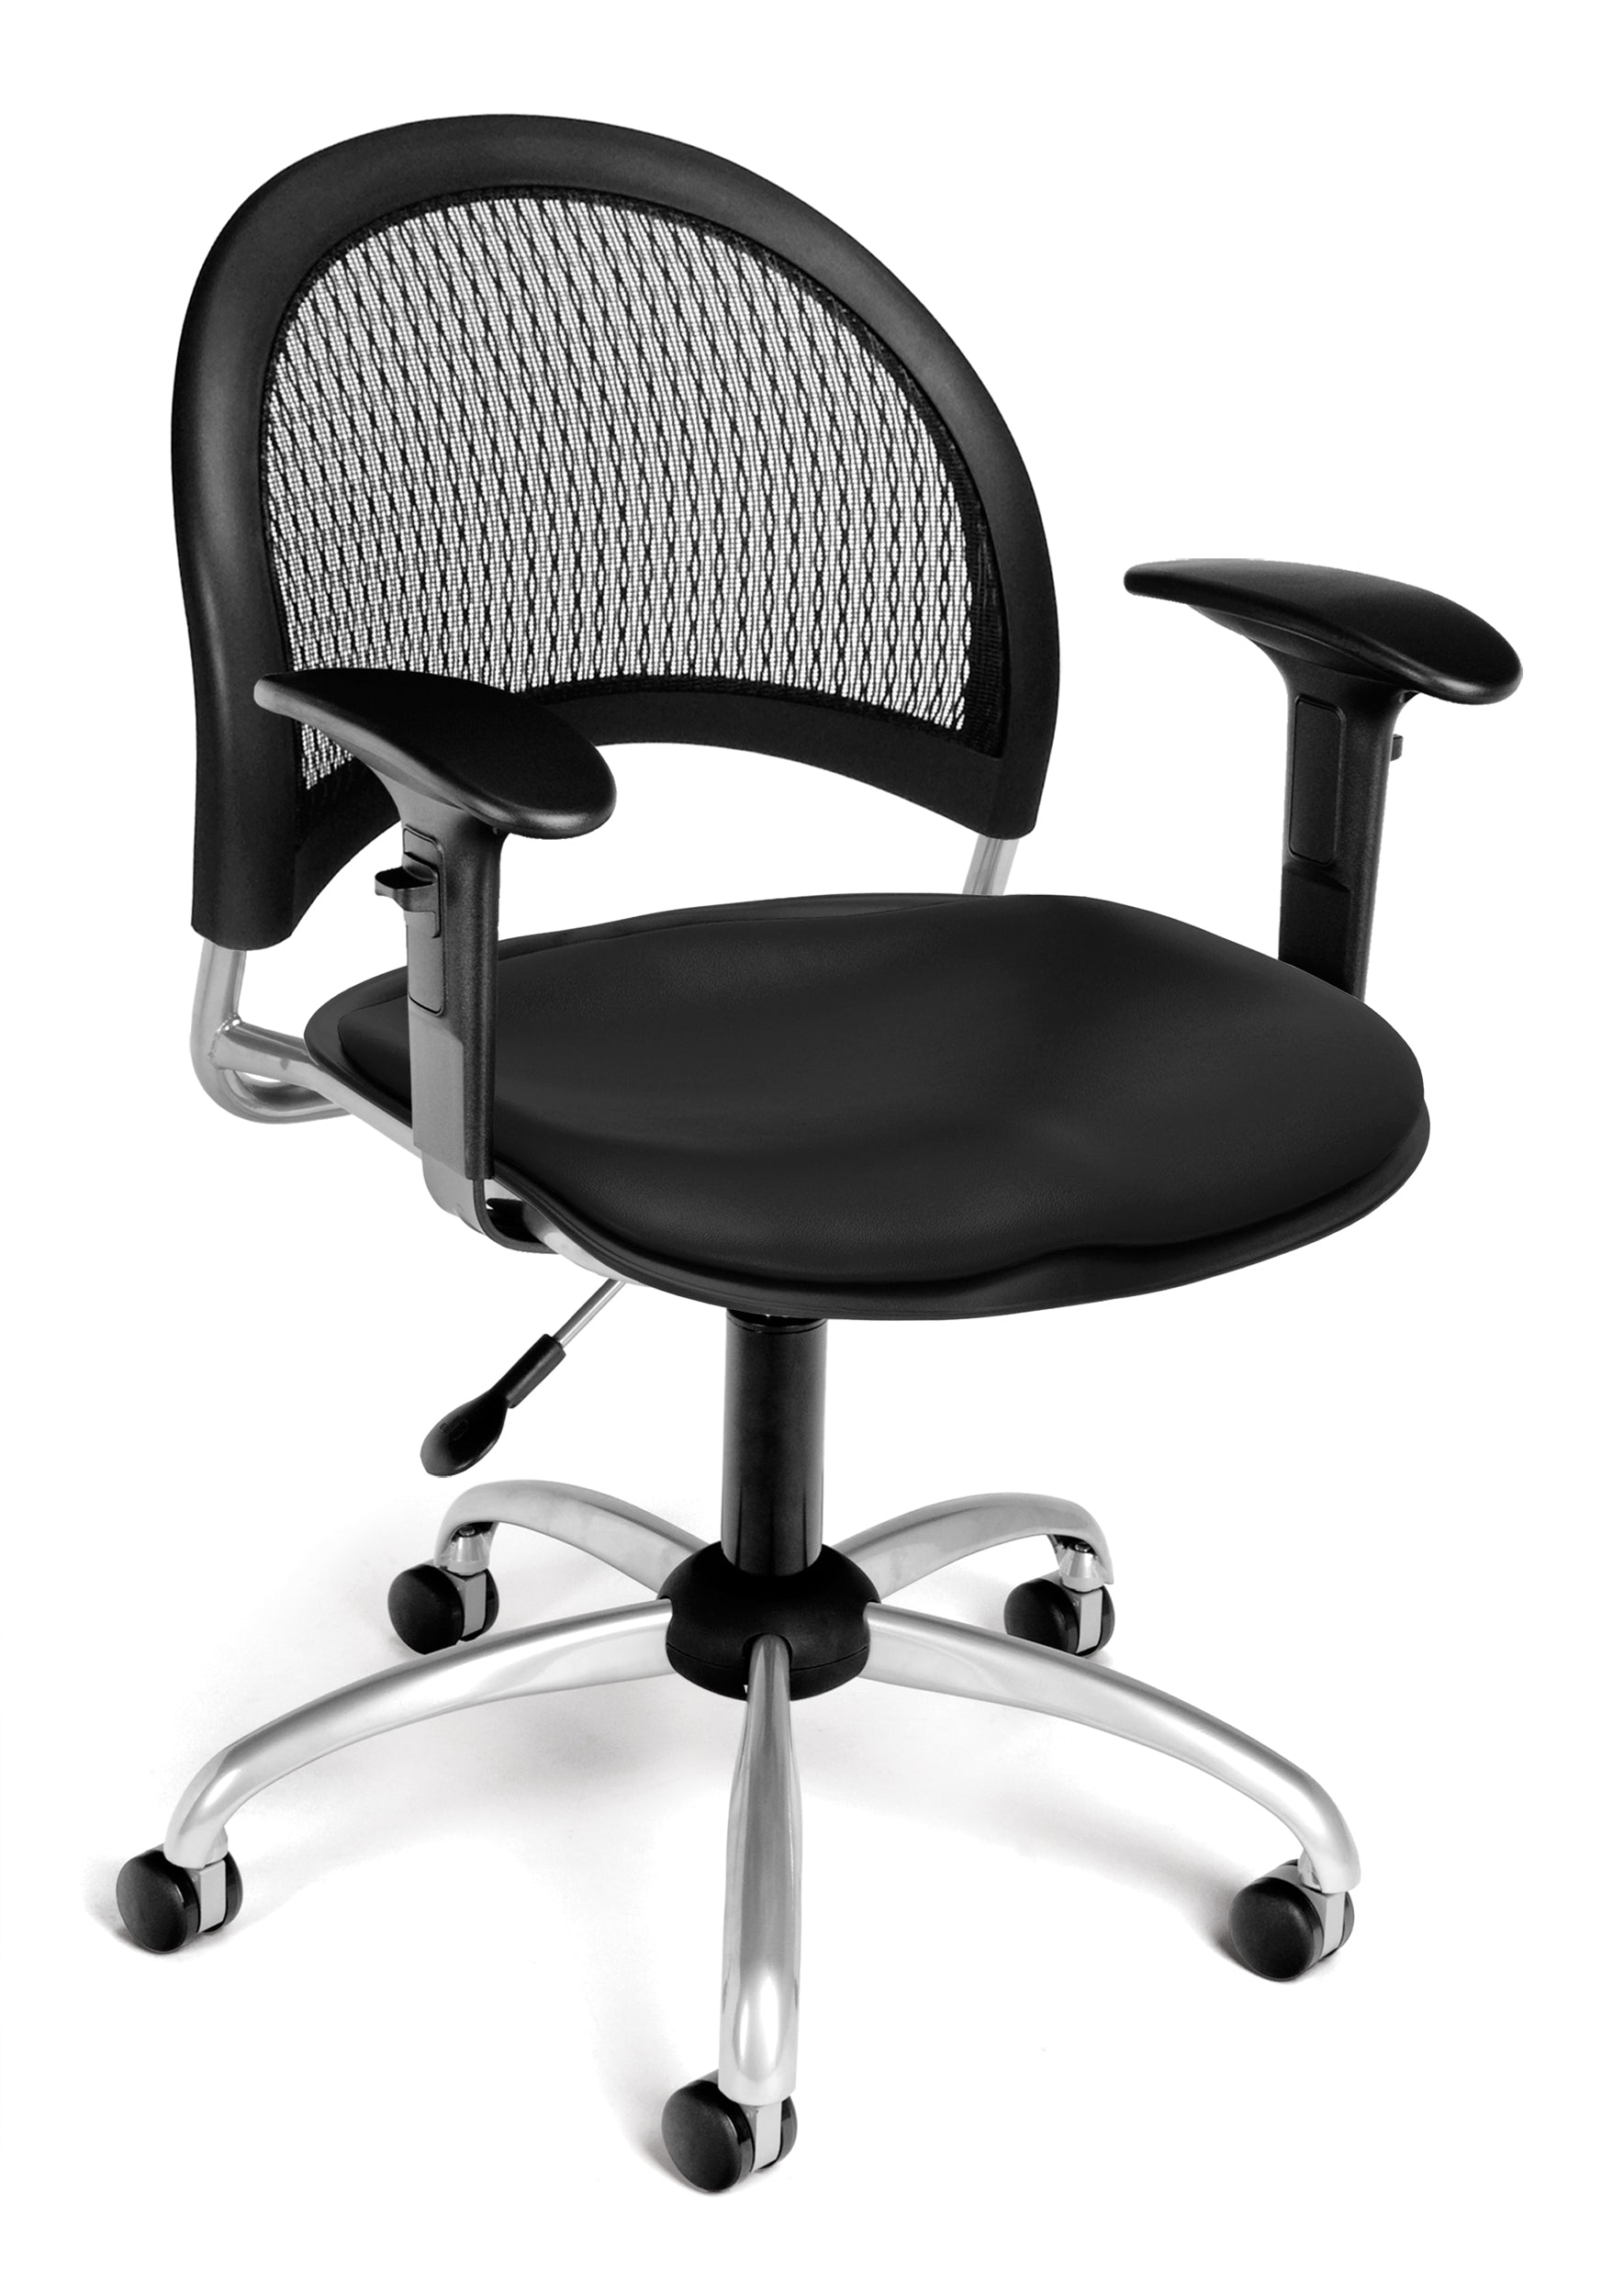 Ofminc Model 336-VAM-AA3 Moon Series Vinyl Swivel Arms Chair